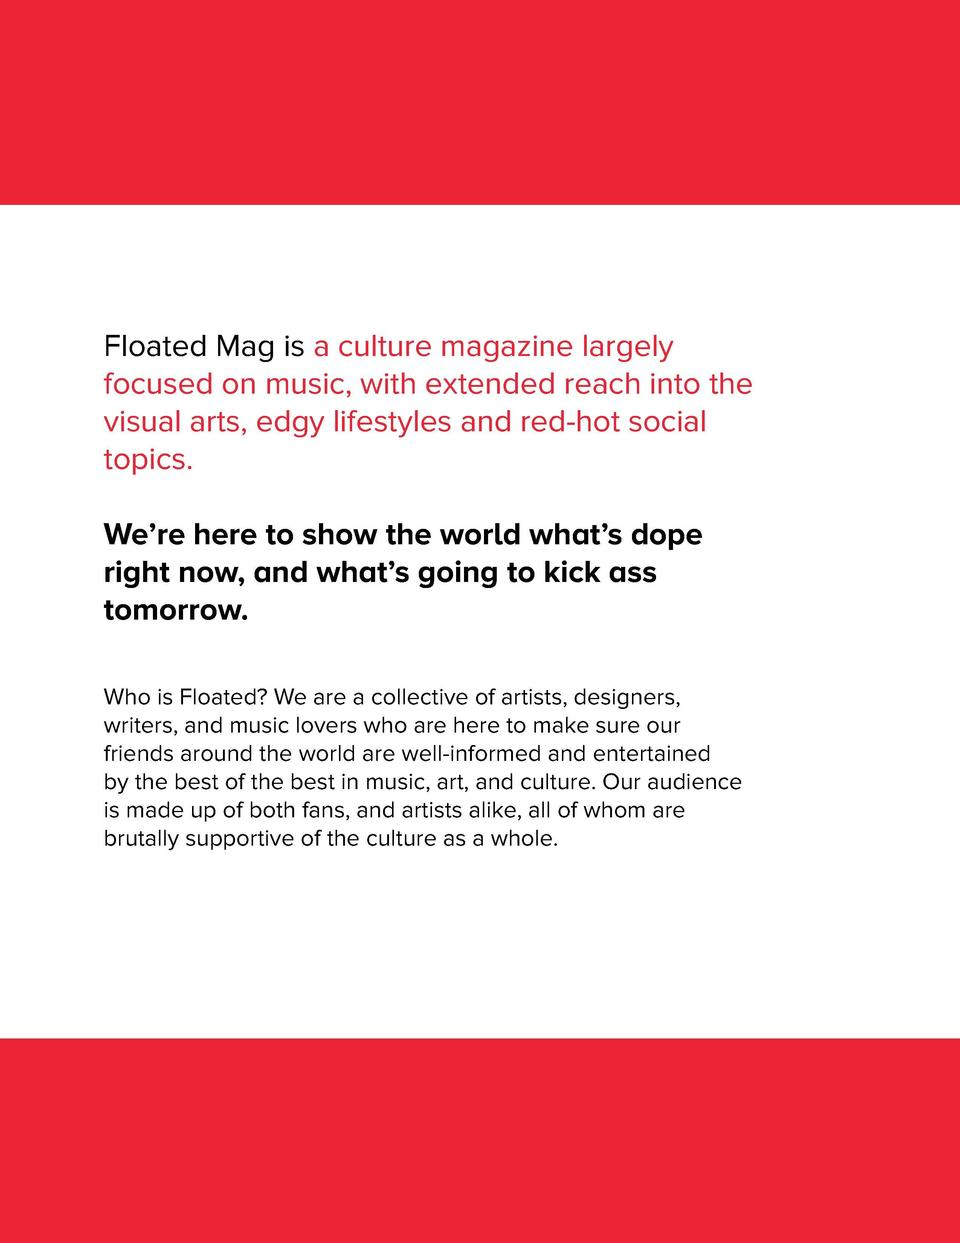 Floated Mag is a culture magazine largely focused on music, with extended reach into the visual arts, edgy lifestyles and ...